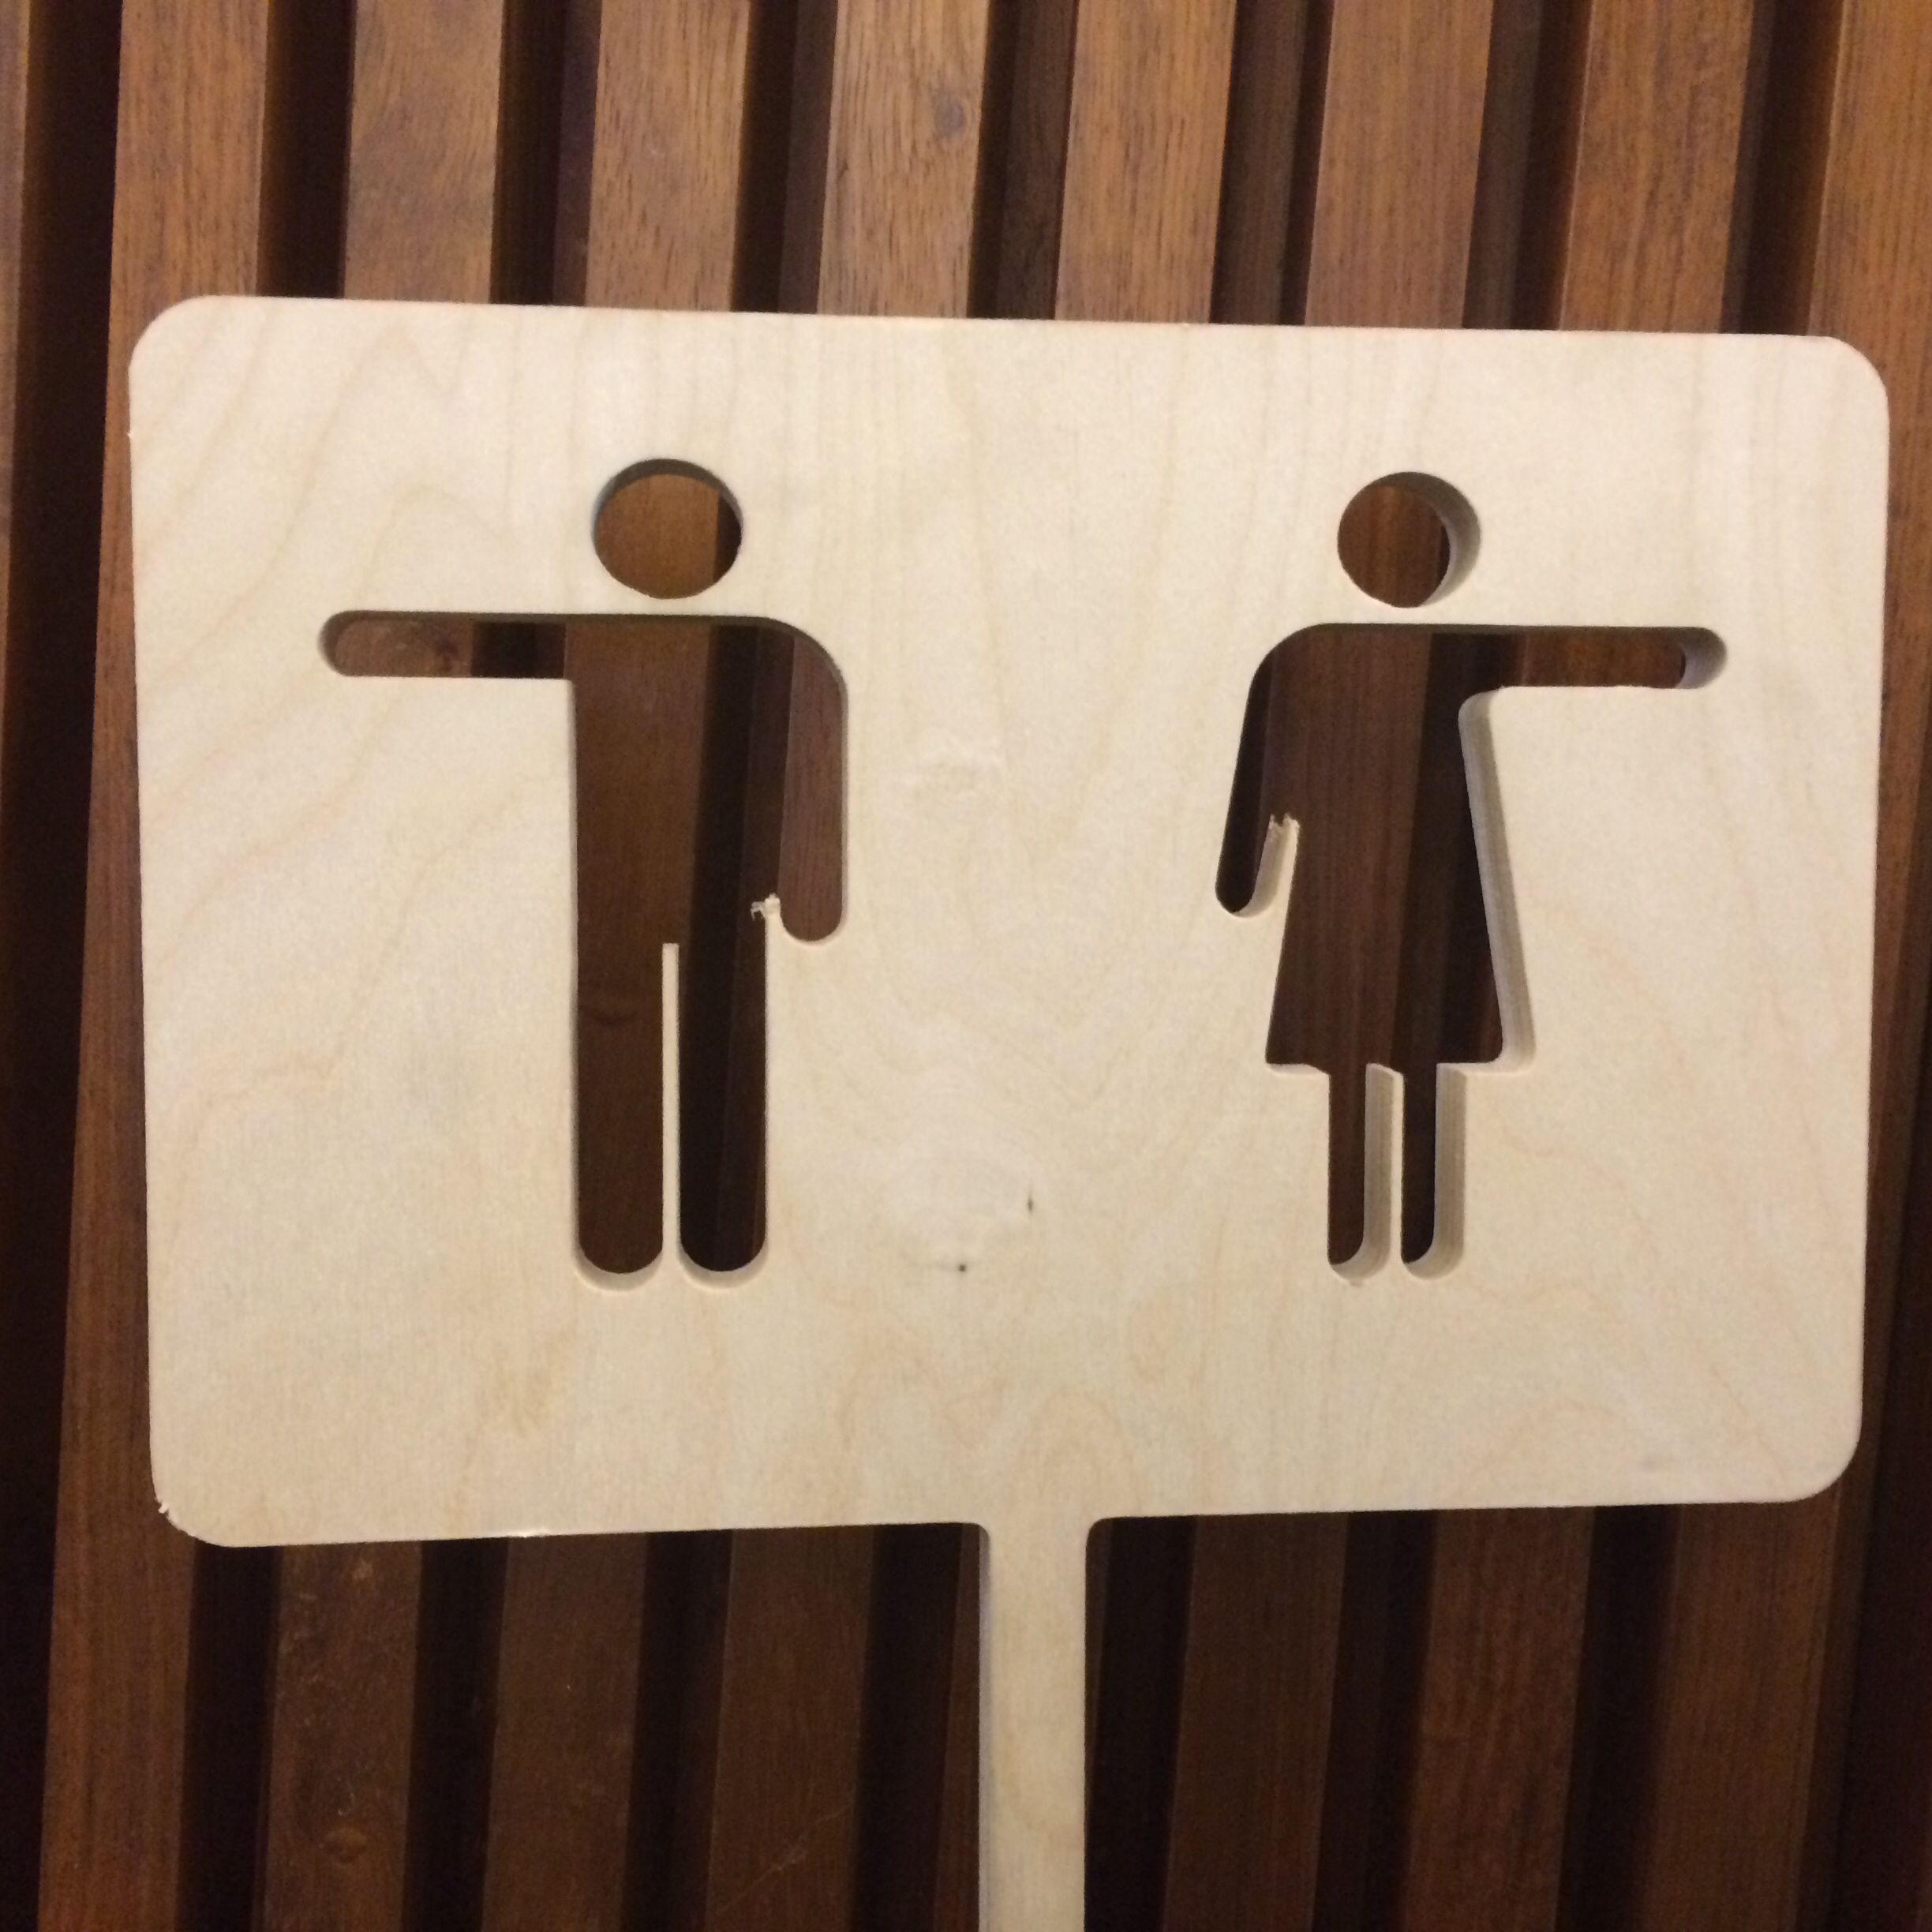 Restroom Sign In New Zealand House London Simple And